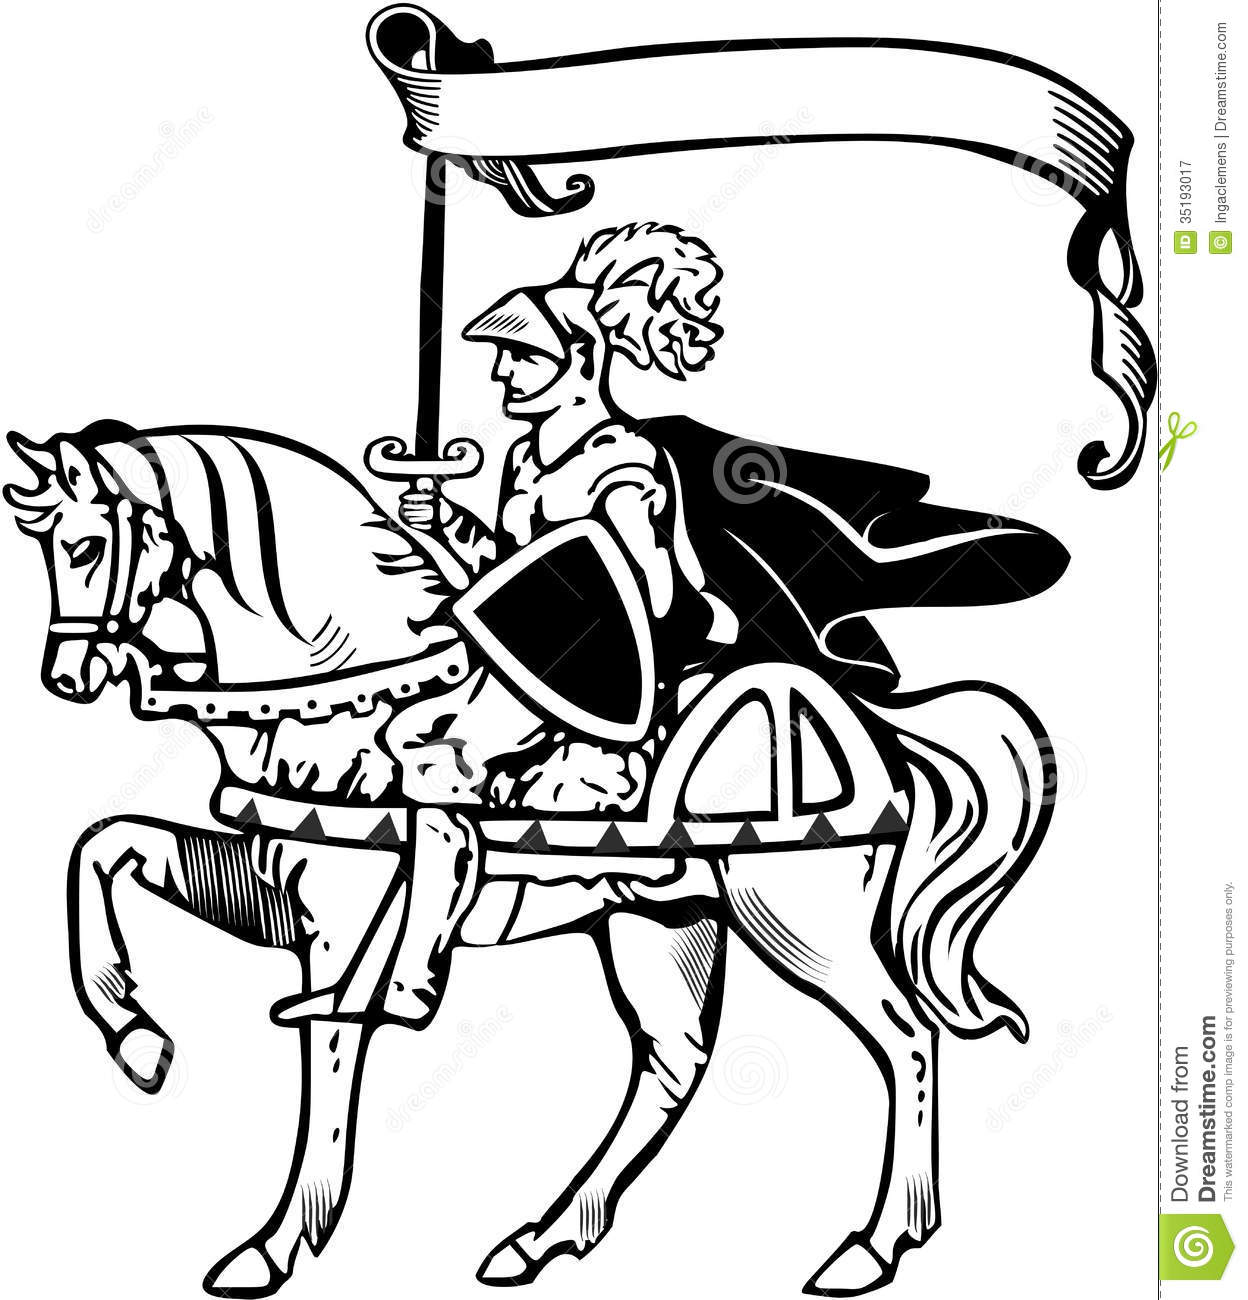 Royalty Free Stock Photography: Knight. Image: 35193017